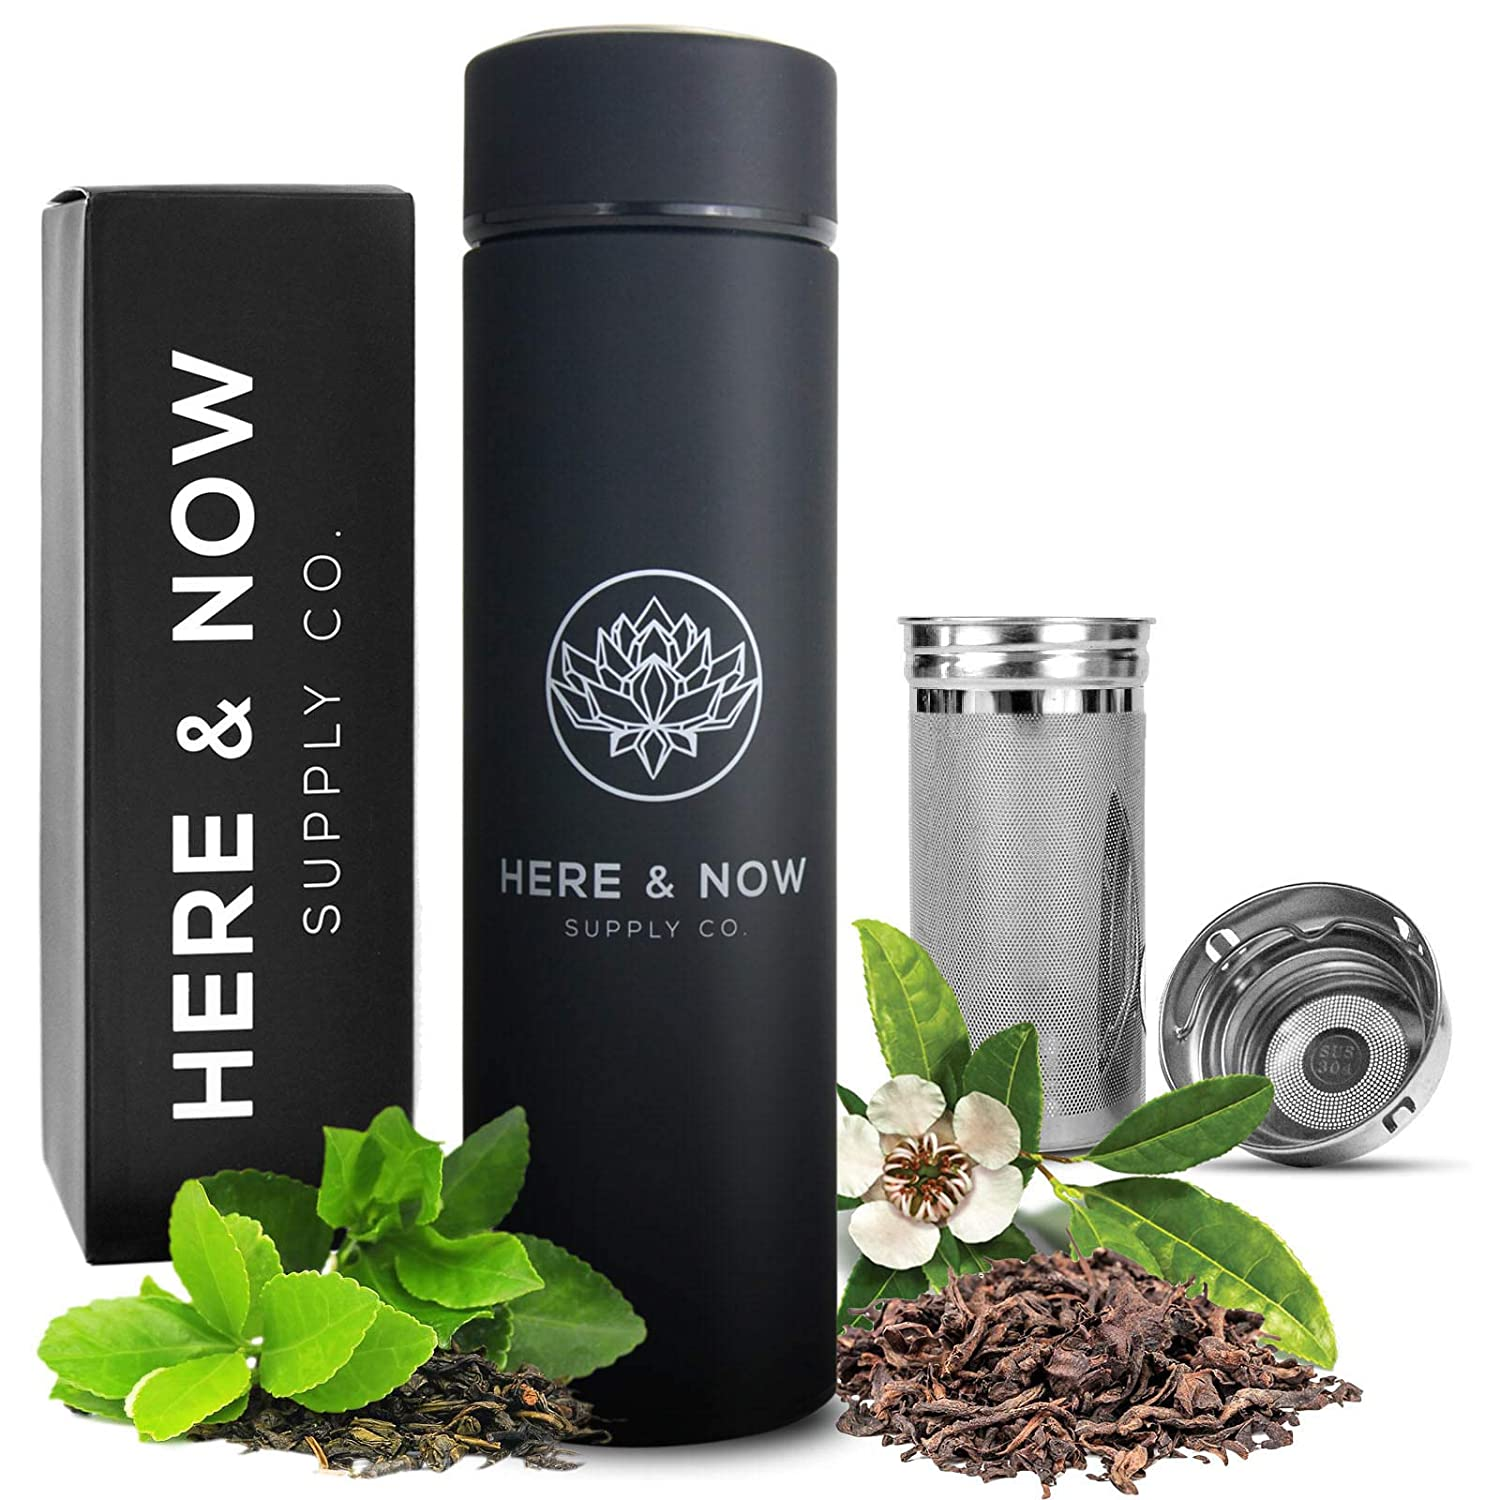 Multi-Purpose Travel Mug and Tumbler | Tea Infuser Water Bottle | Fruit Infused Flask | Hot & Cold Double Wall Stainless Steel Coffee Thermos | EXTRA LONG INFUSER | by Here & Now Supply Co. (Black)